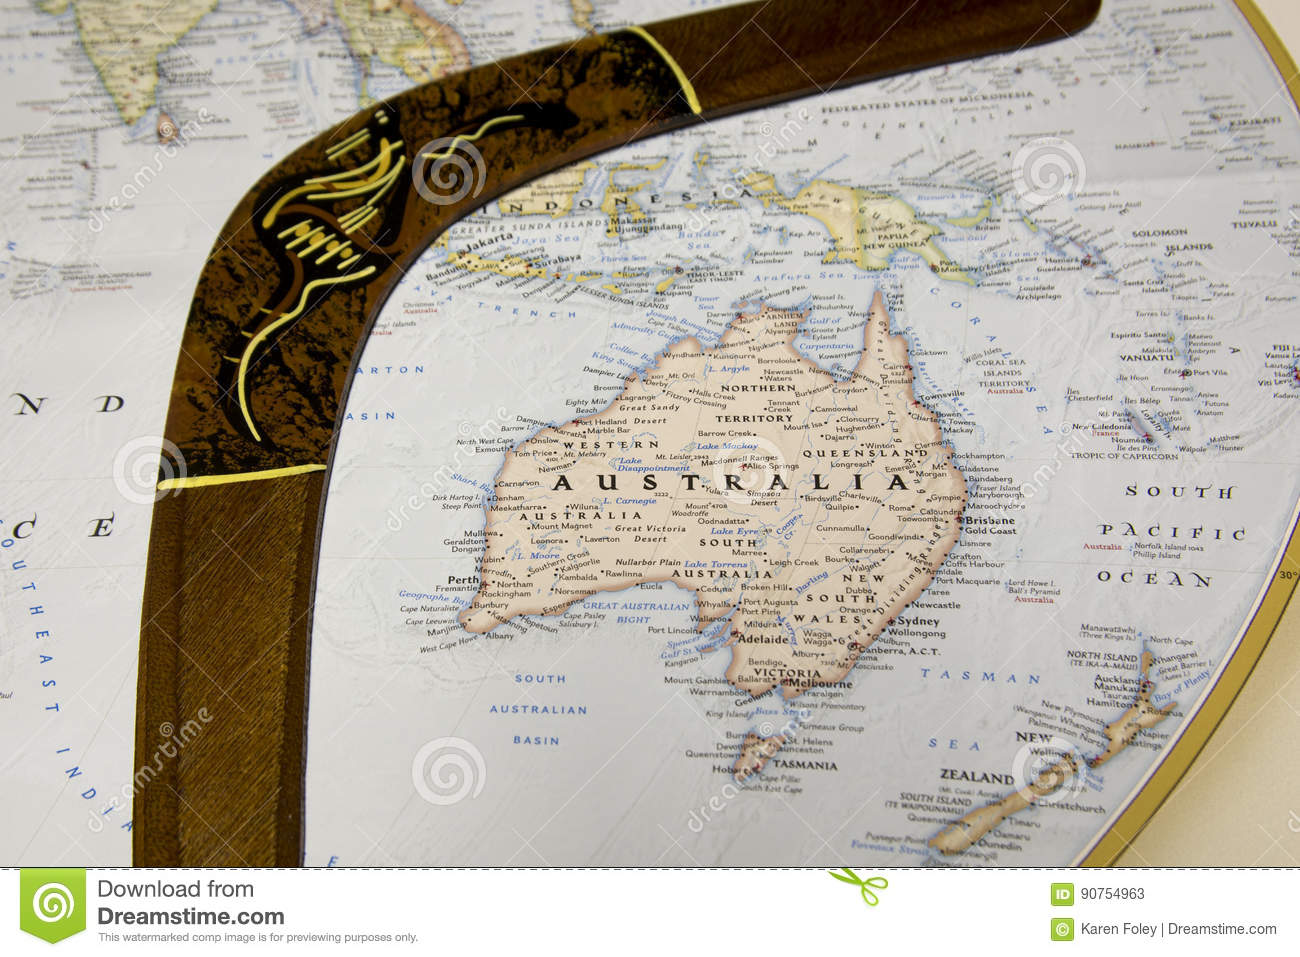 Map of Australia with wooden boomerang